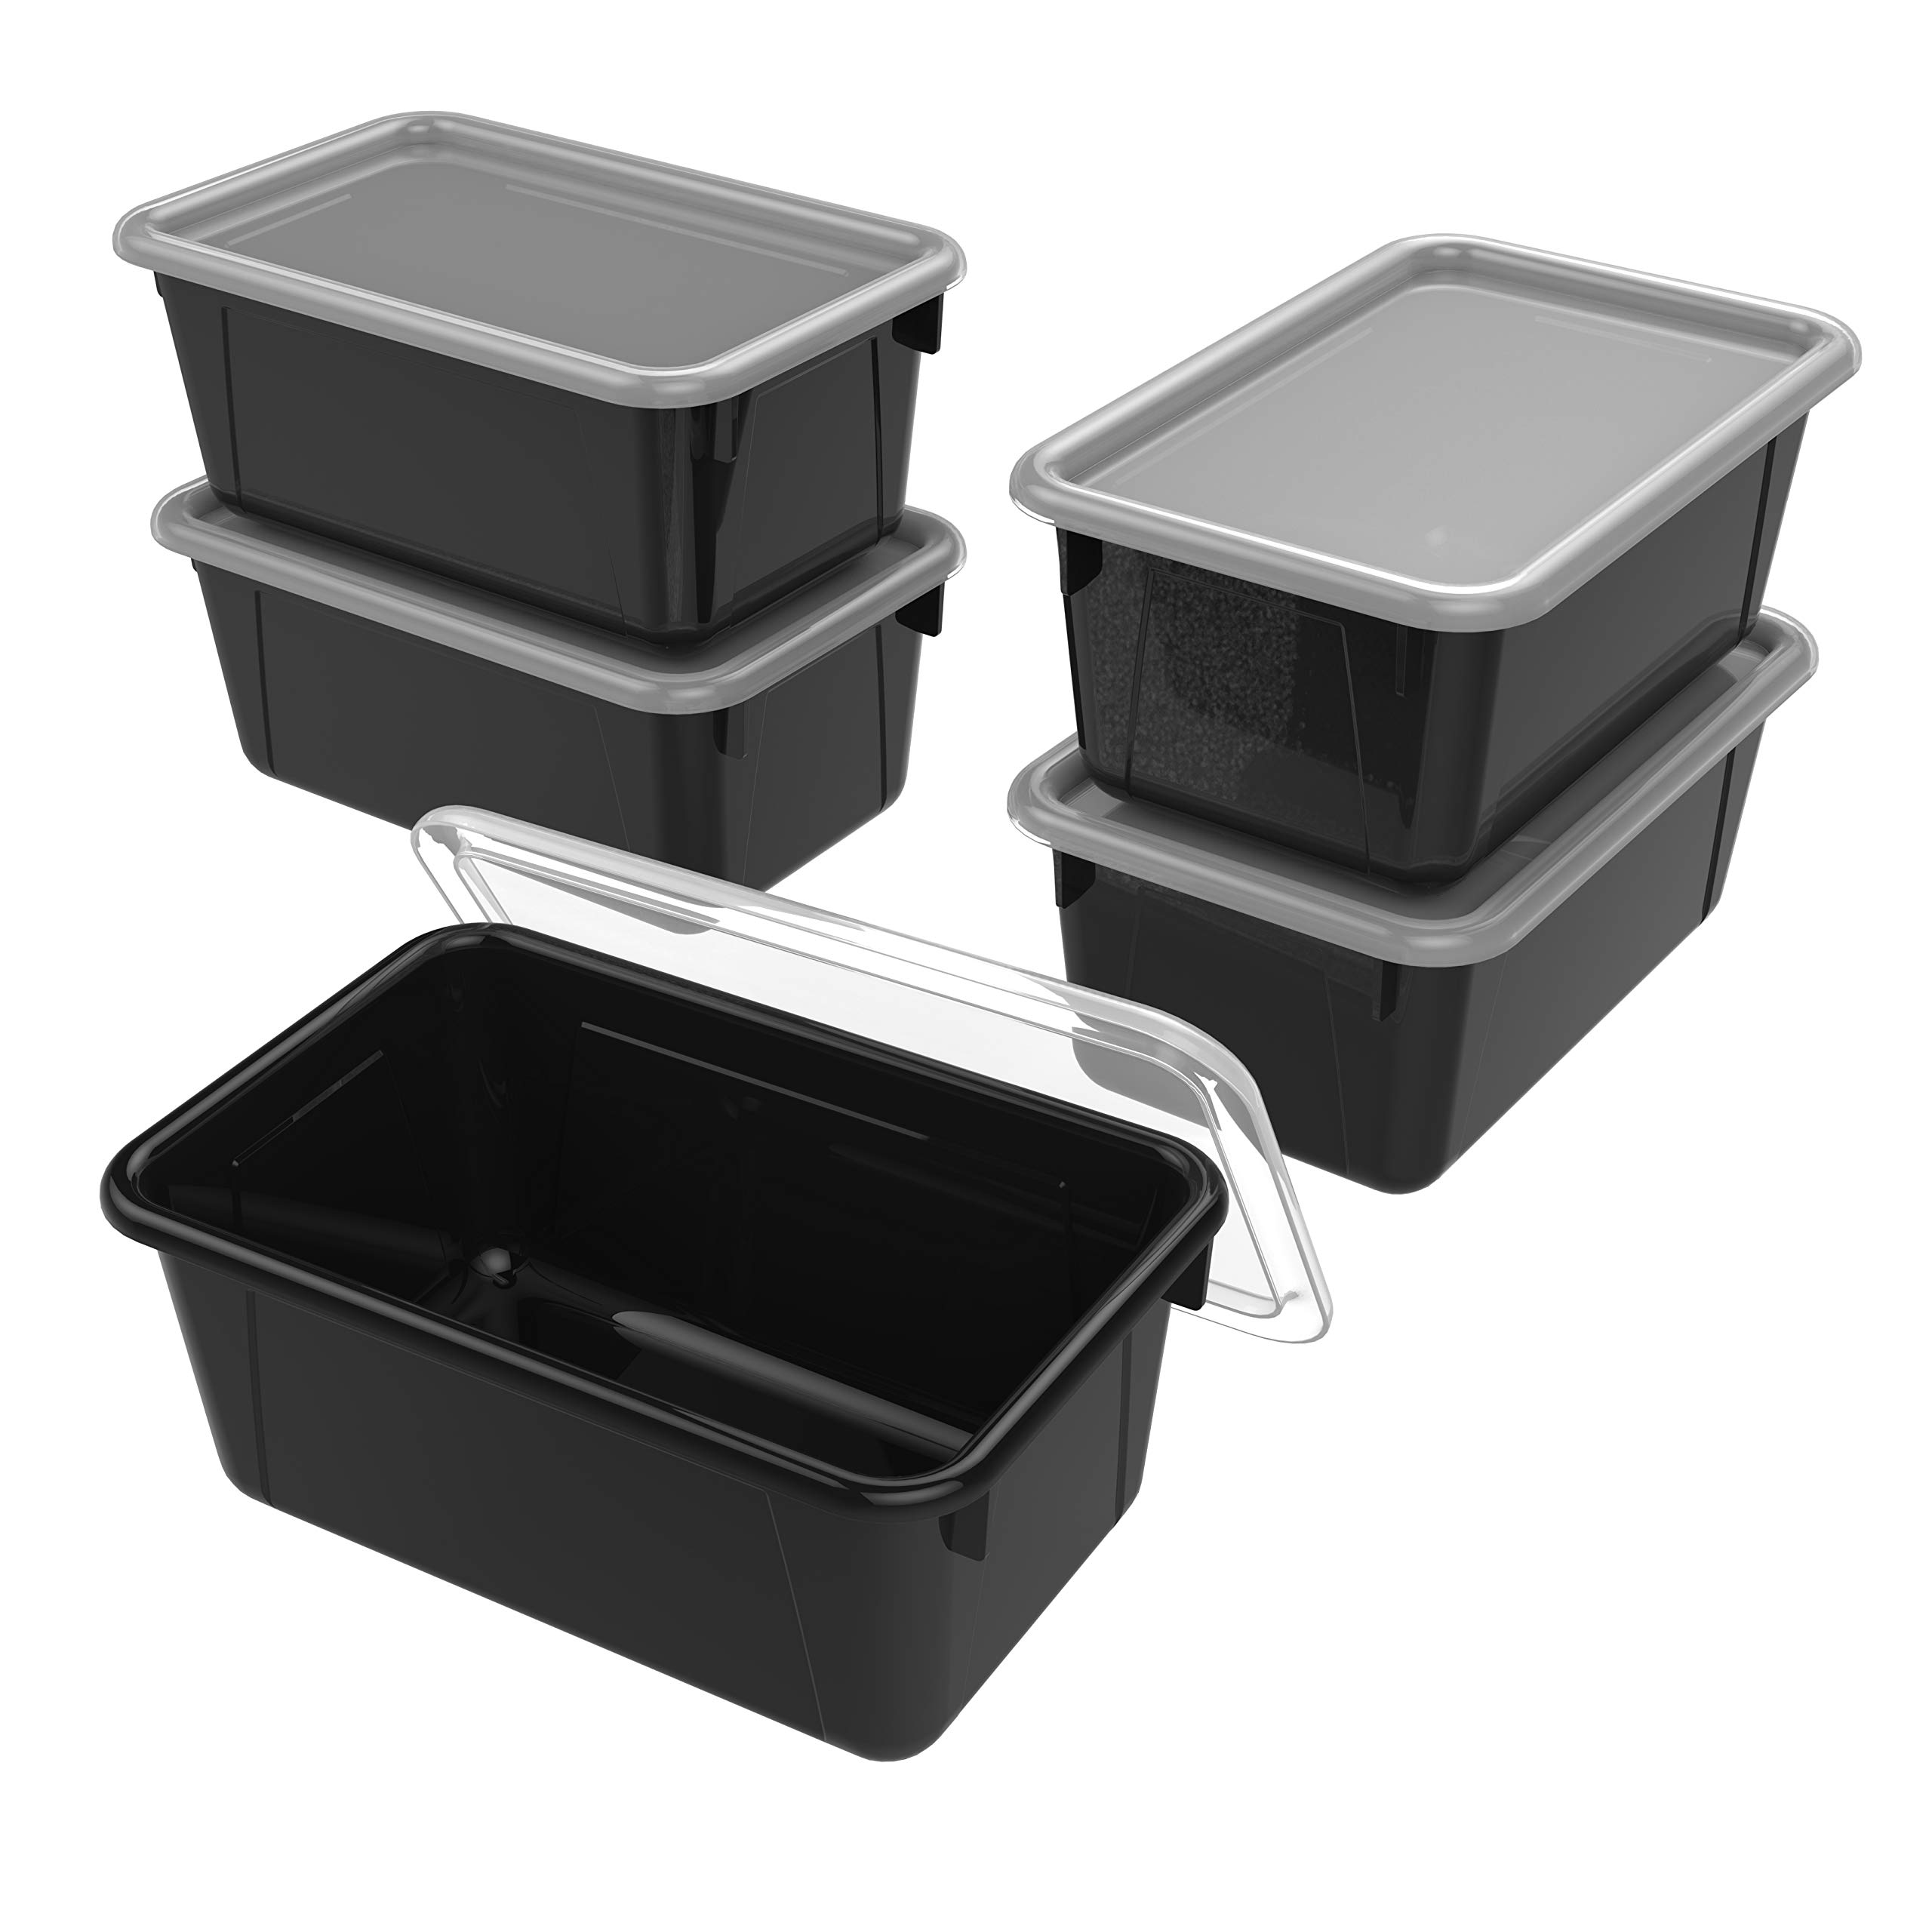 Storex Small Cubby Bin with Cover, 12.2 x 7.8 x 5.1 Inches, Black, 5-Pack (62463U05C)